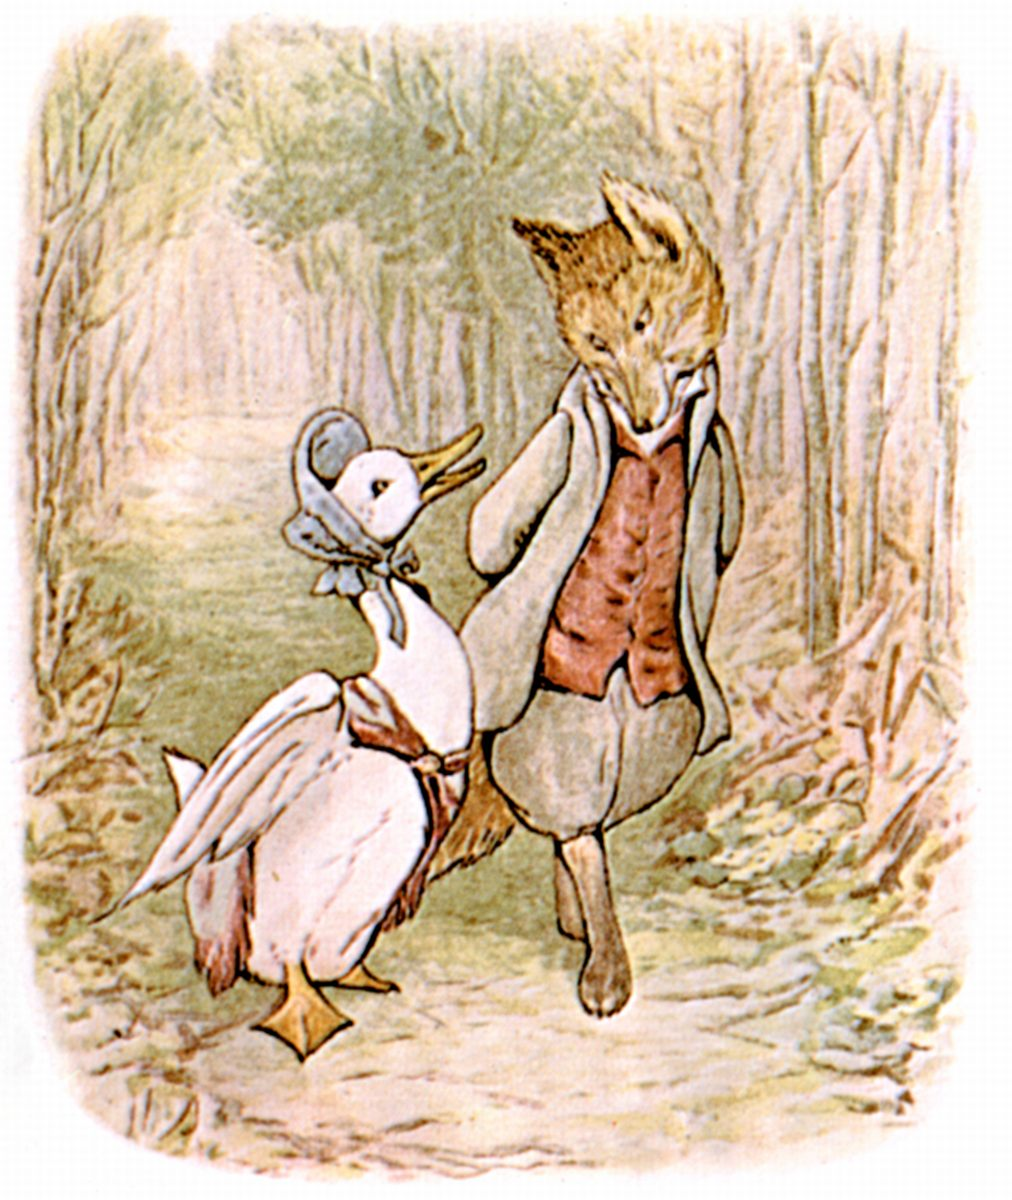 on culture the dark side of beatrix potter